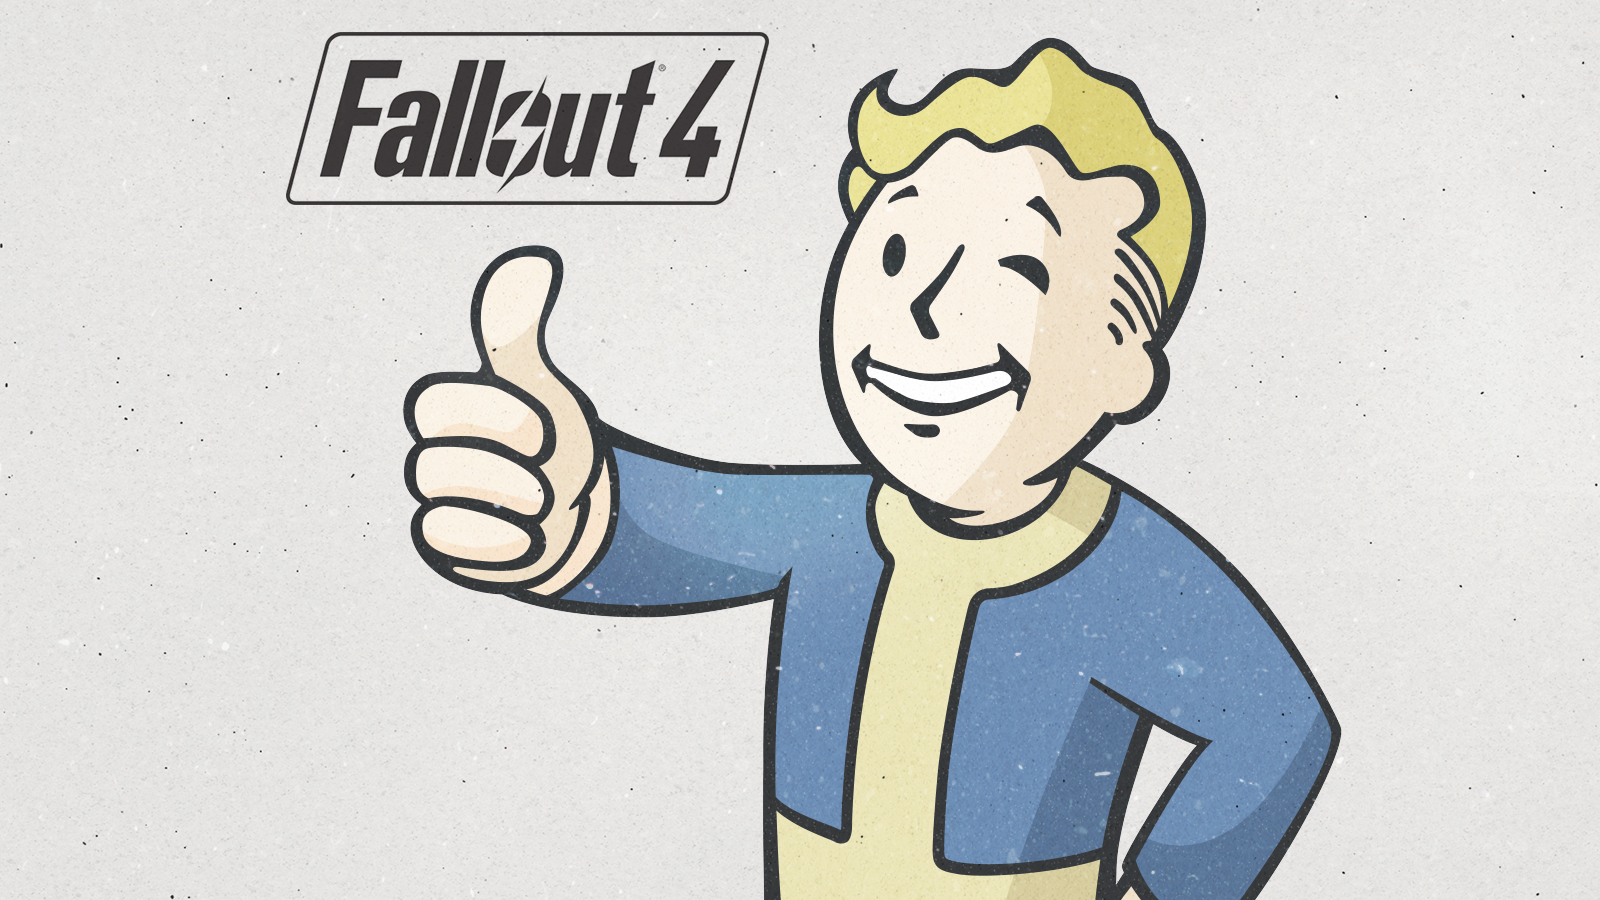 Fallout 4 png download Fallout 4 Game | PS4 - PlayStation png download